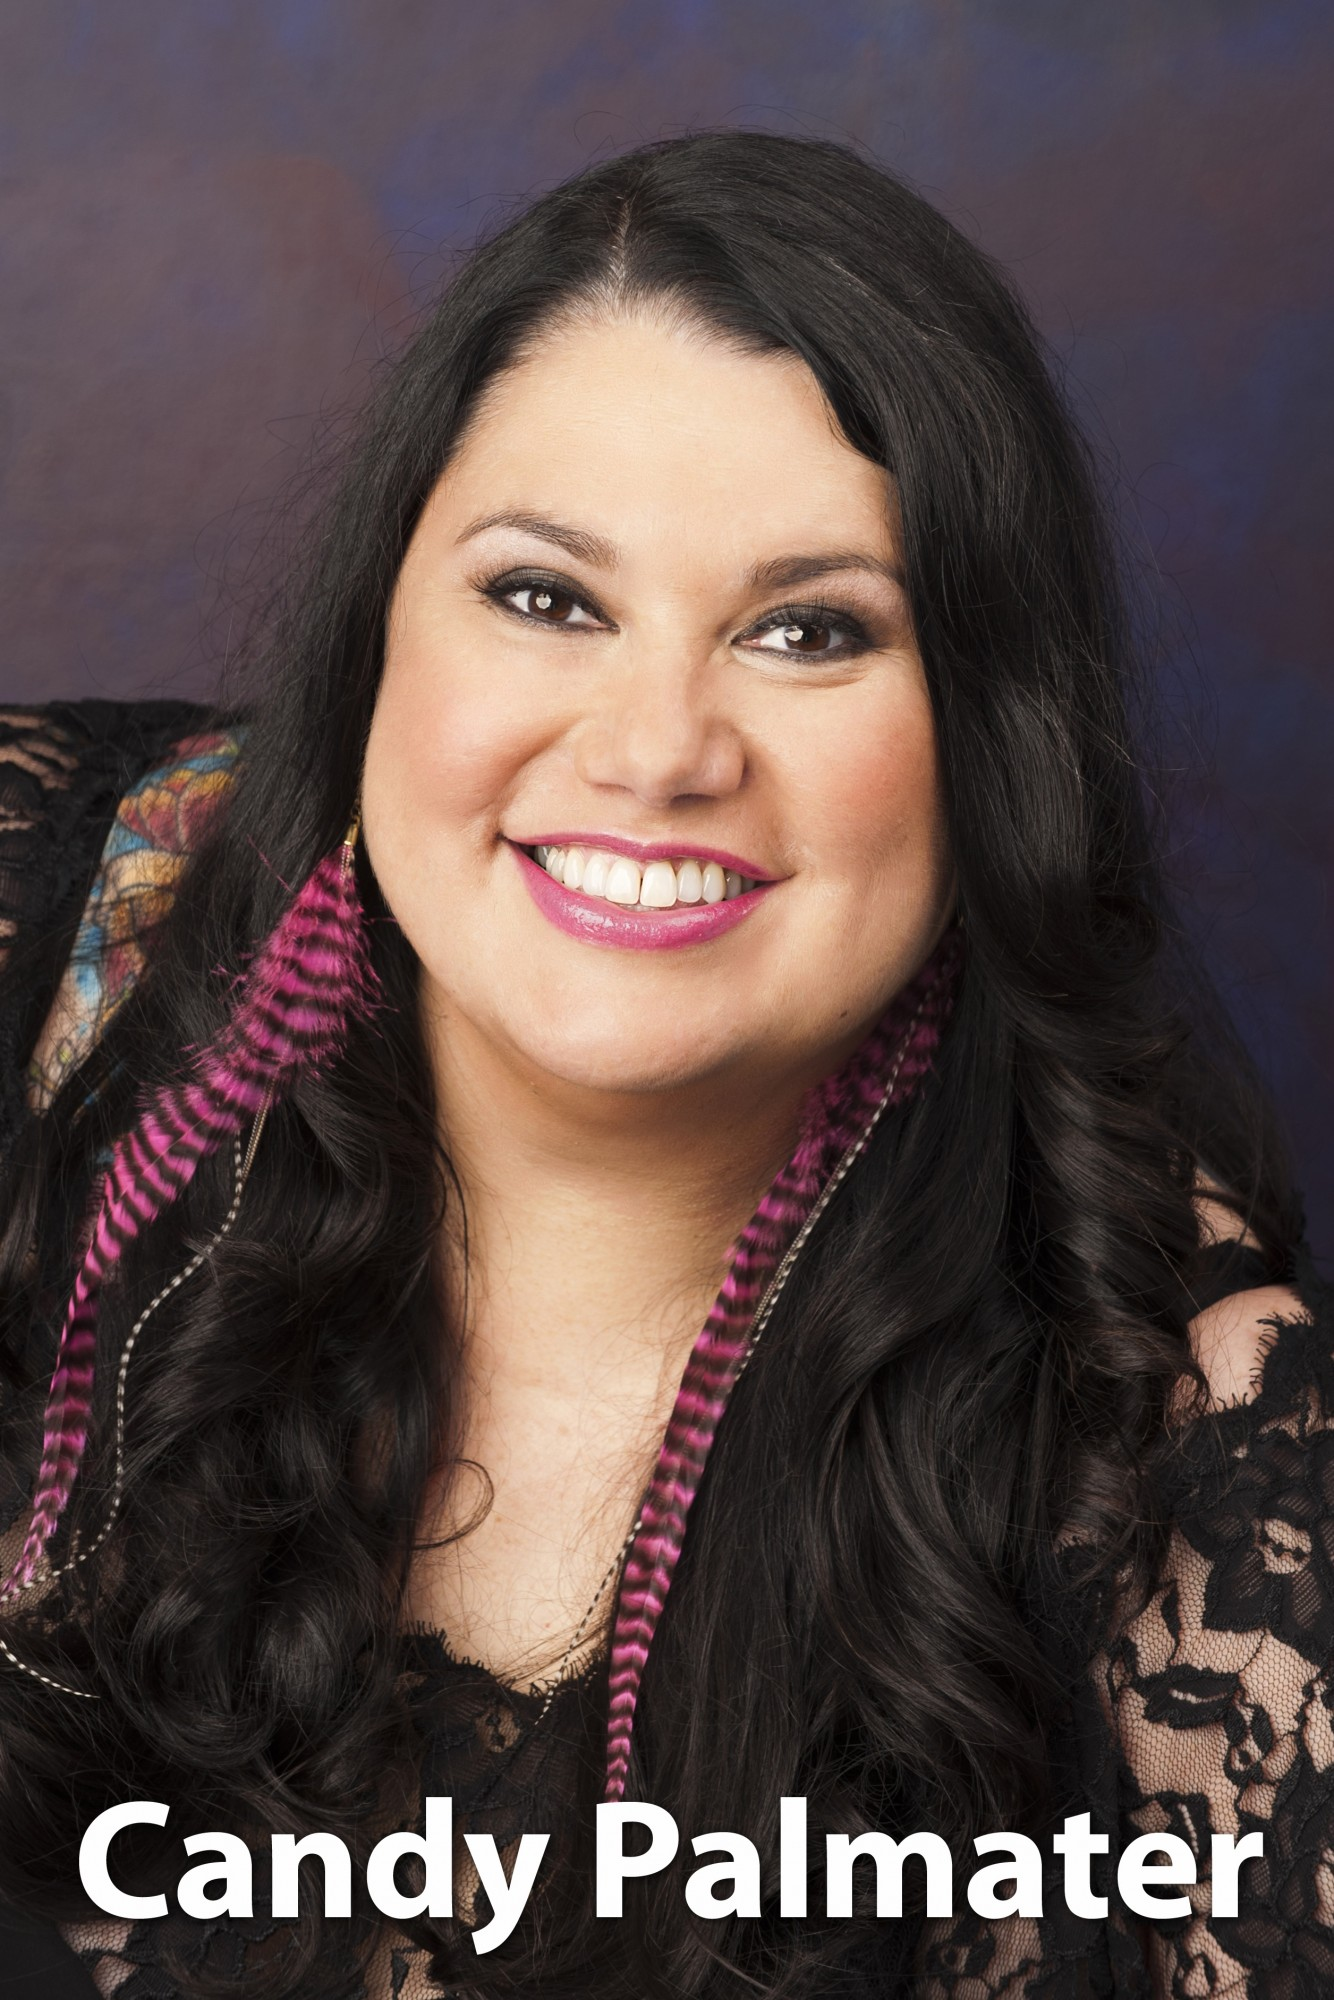 Candy Palmater Candy Palmater new pics